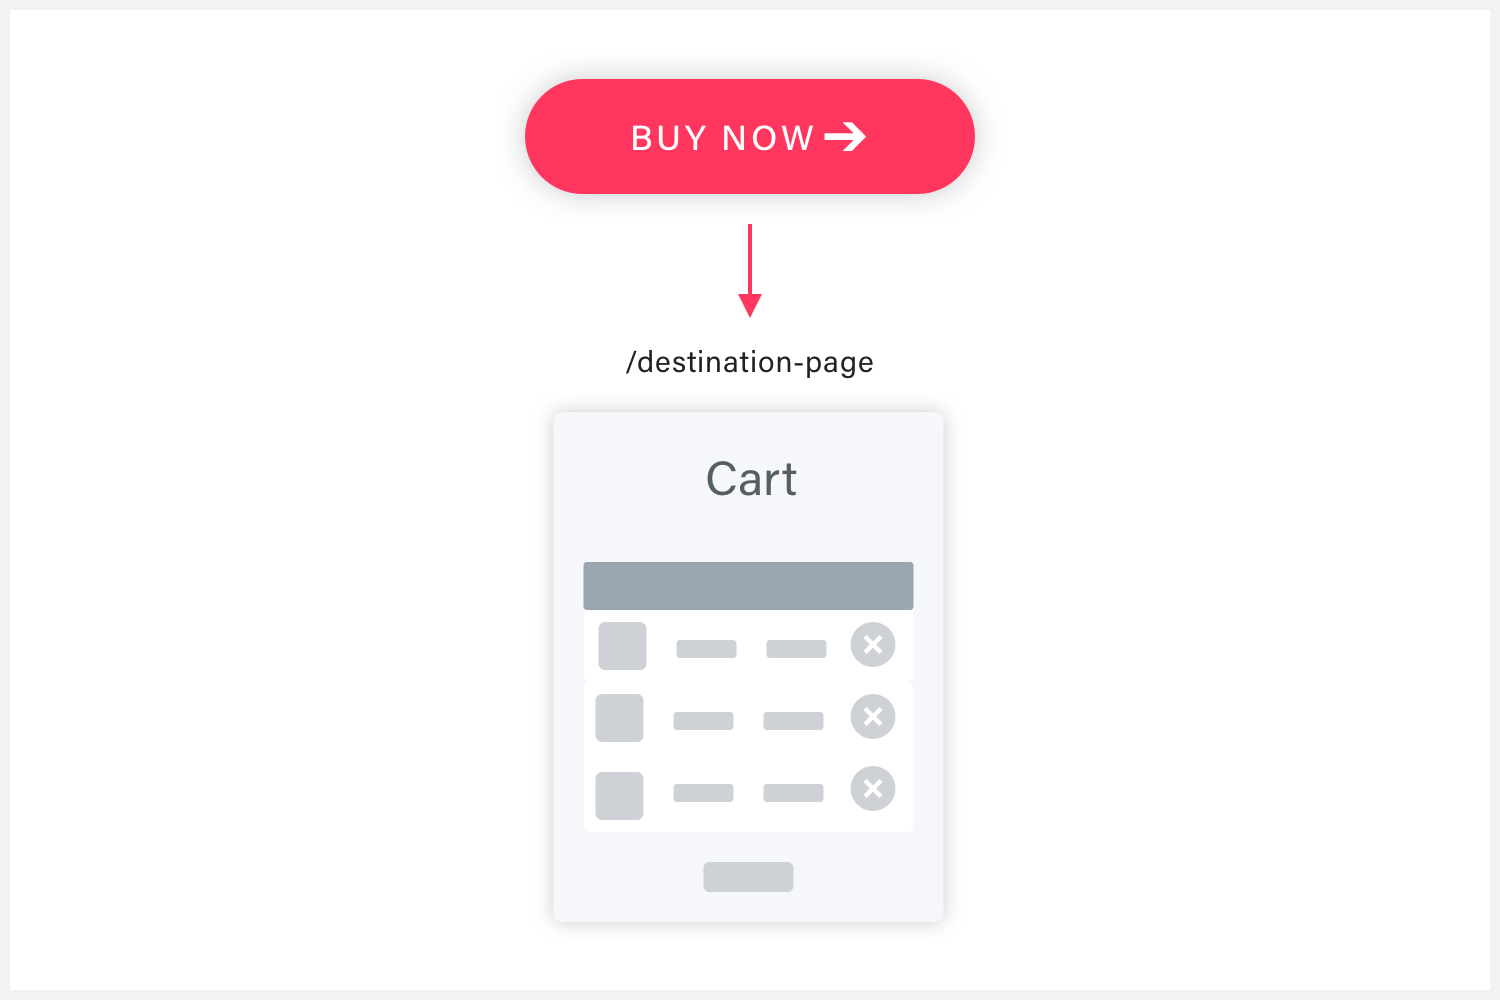 A red CTA button linking to a destination page for checking out.